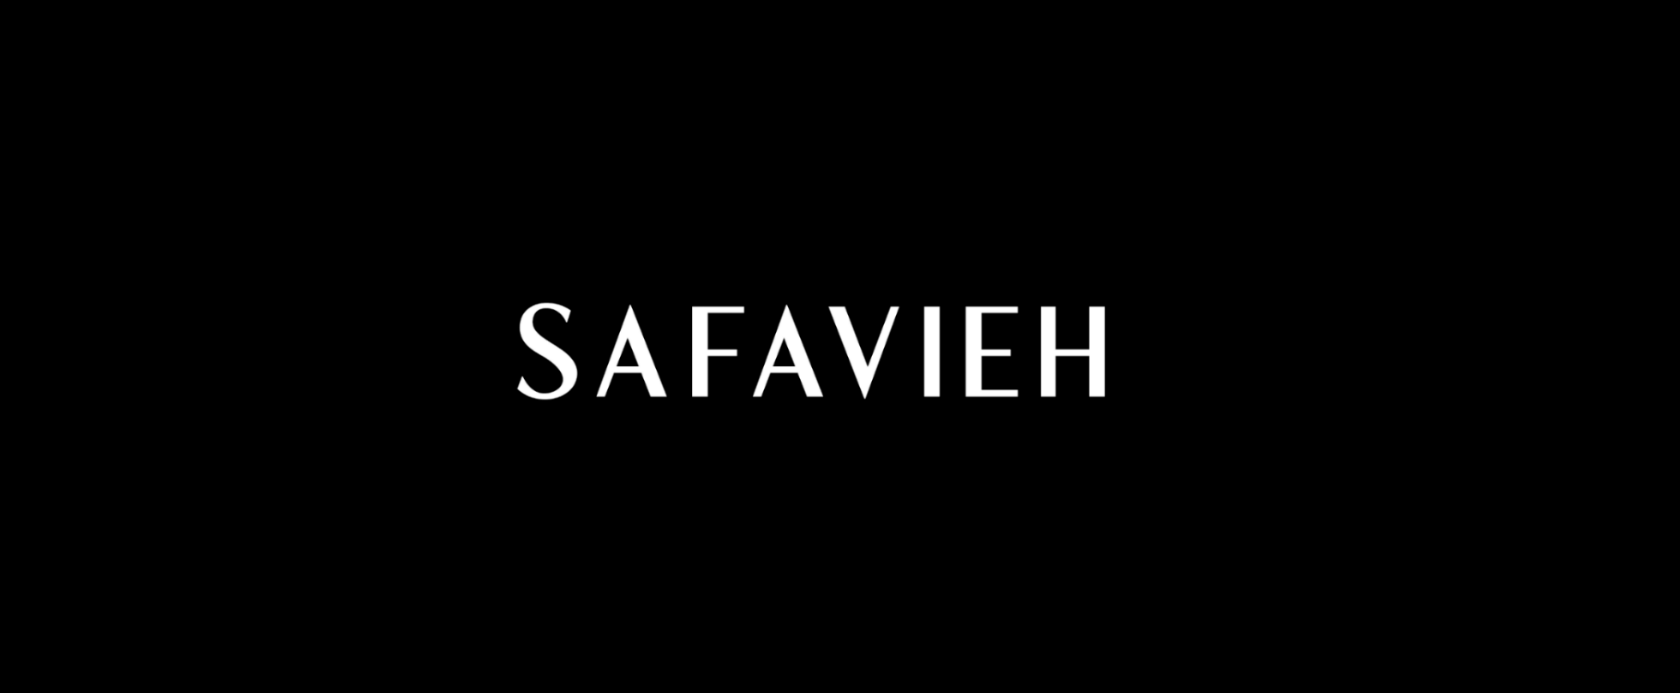 Amazon.com: Safavieh